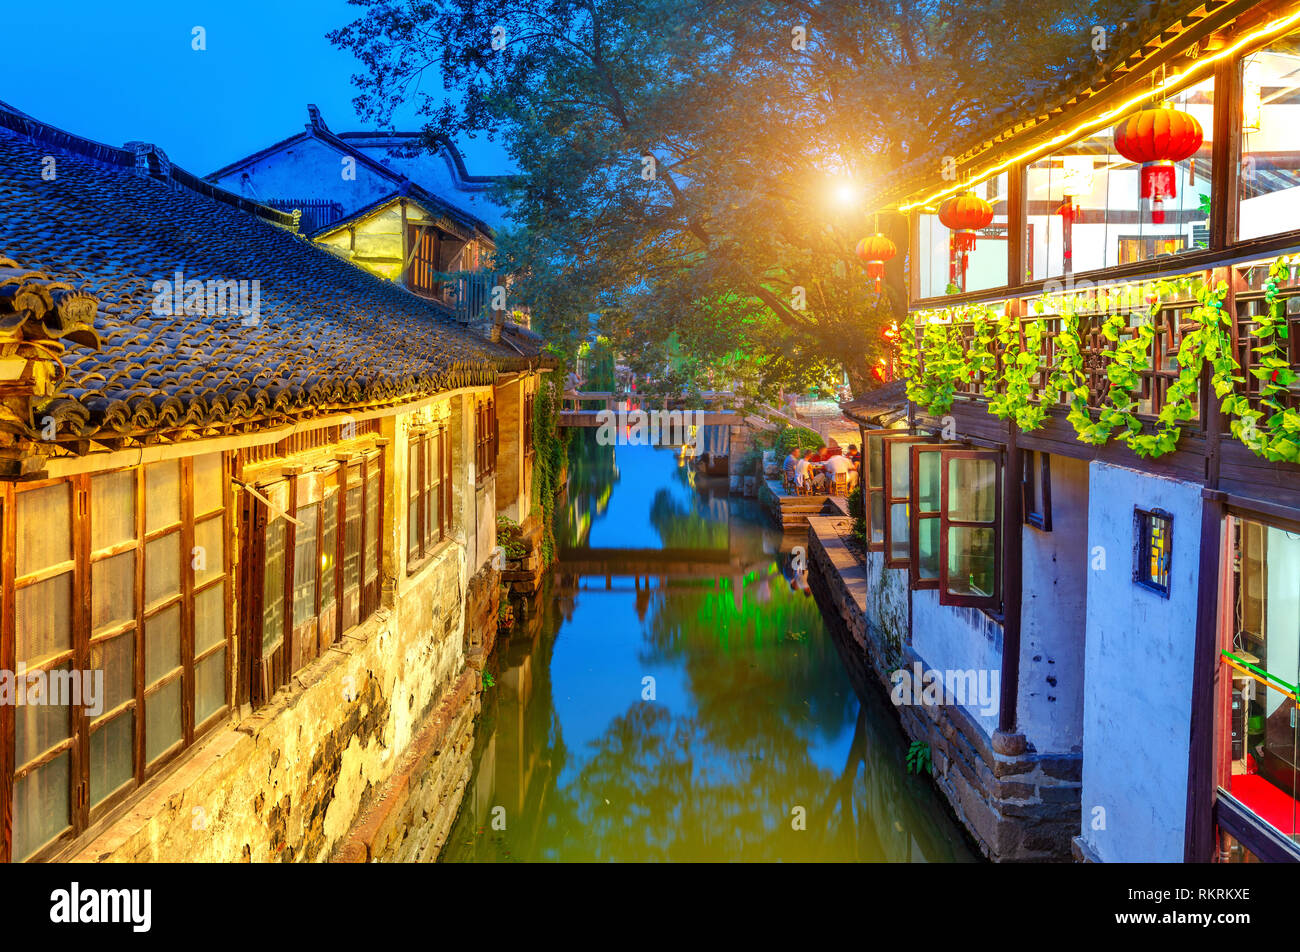 Zhouzhuang, China is a famous water town in the Suzhou area. There are many ancient towns in the south of the Yangtze River. Stock Photo